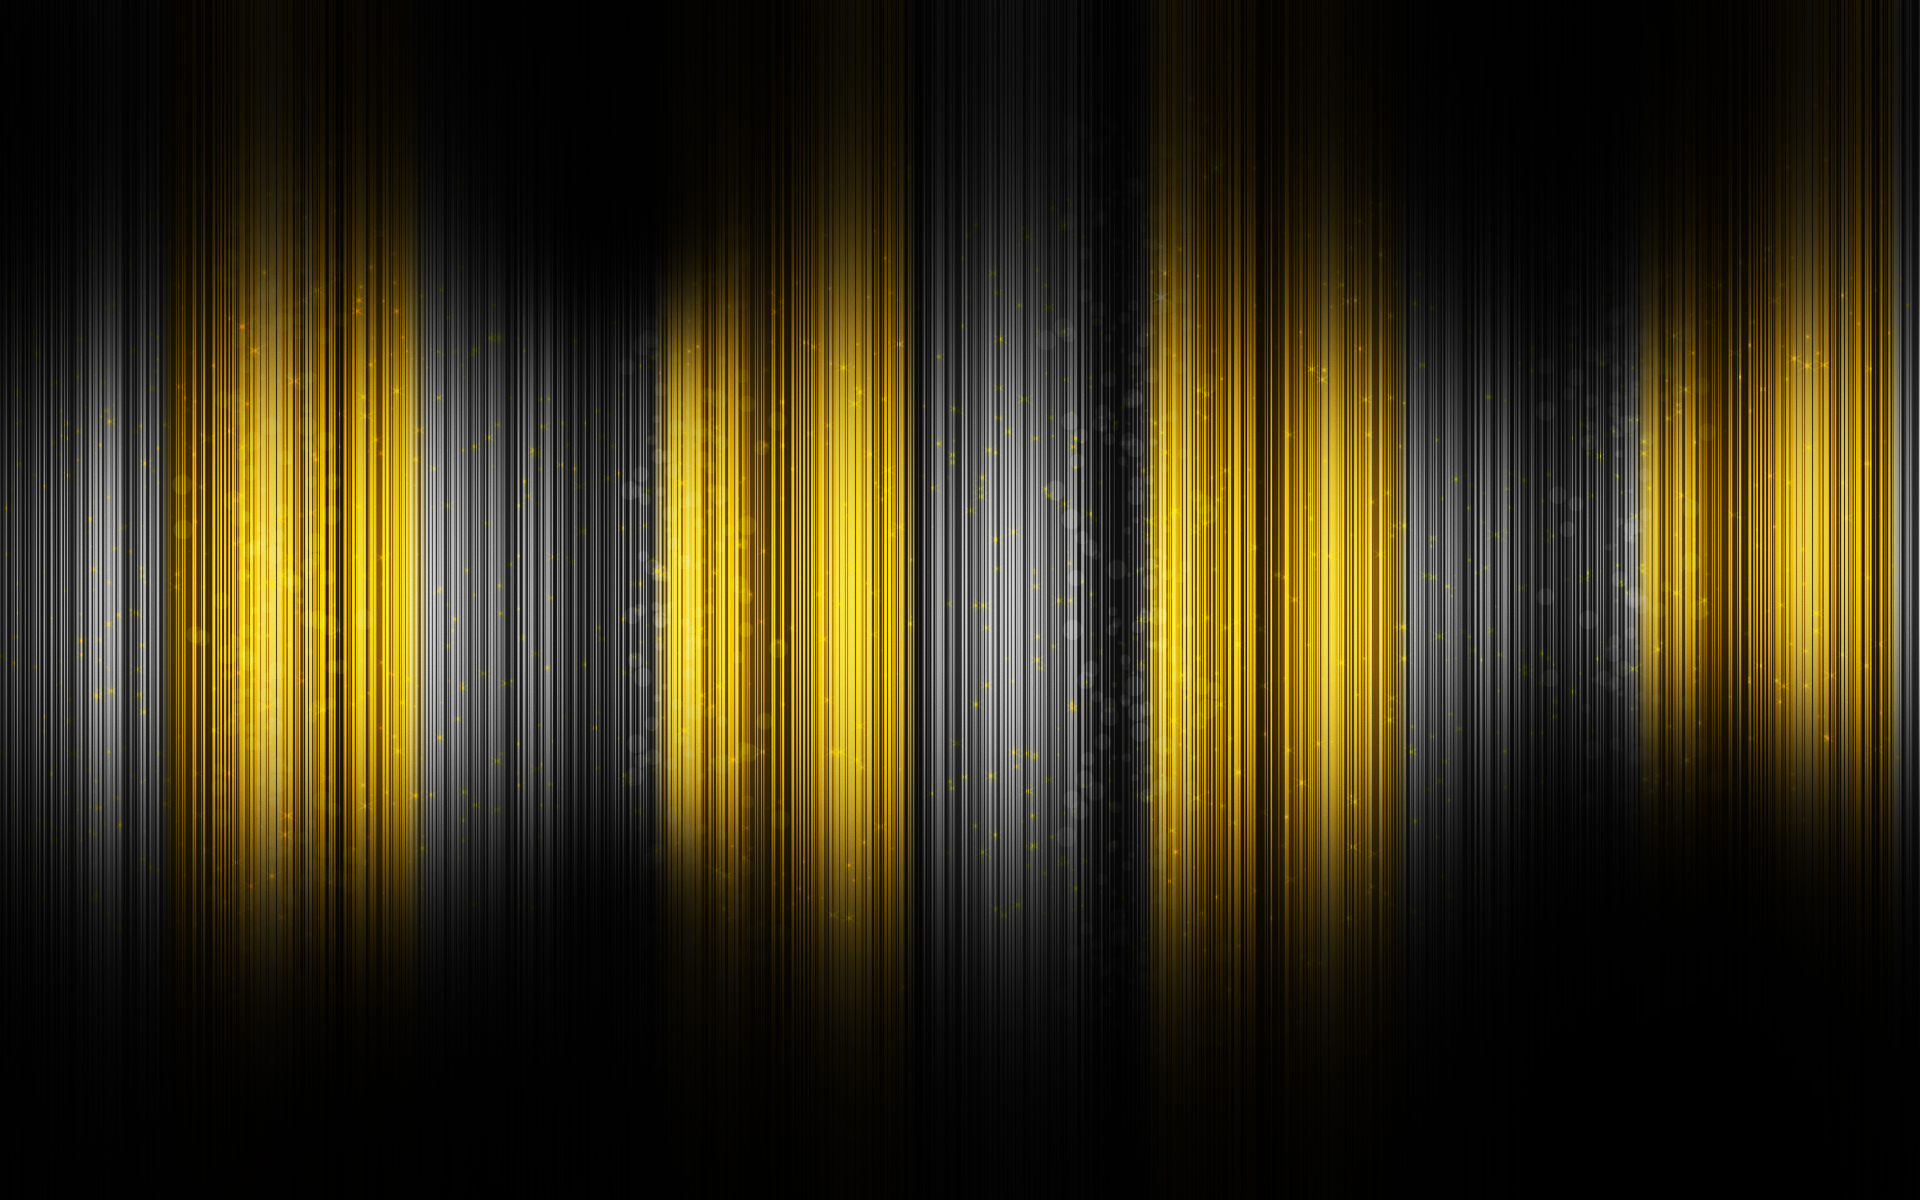 Abstract hd wallpapers wallpapersafari for Modern background hd